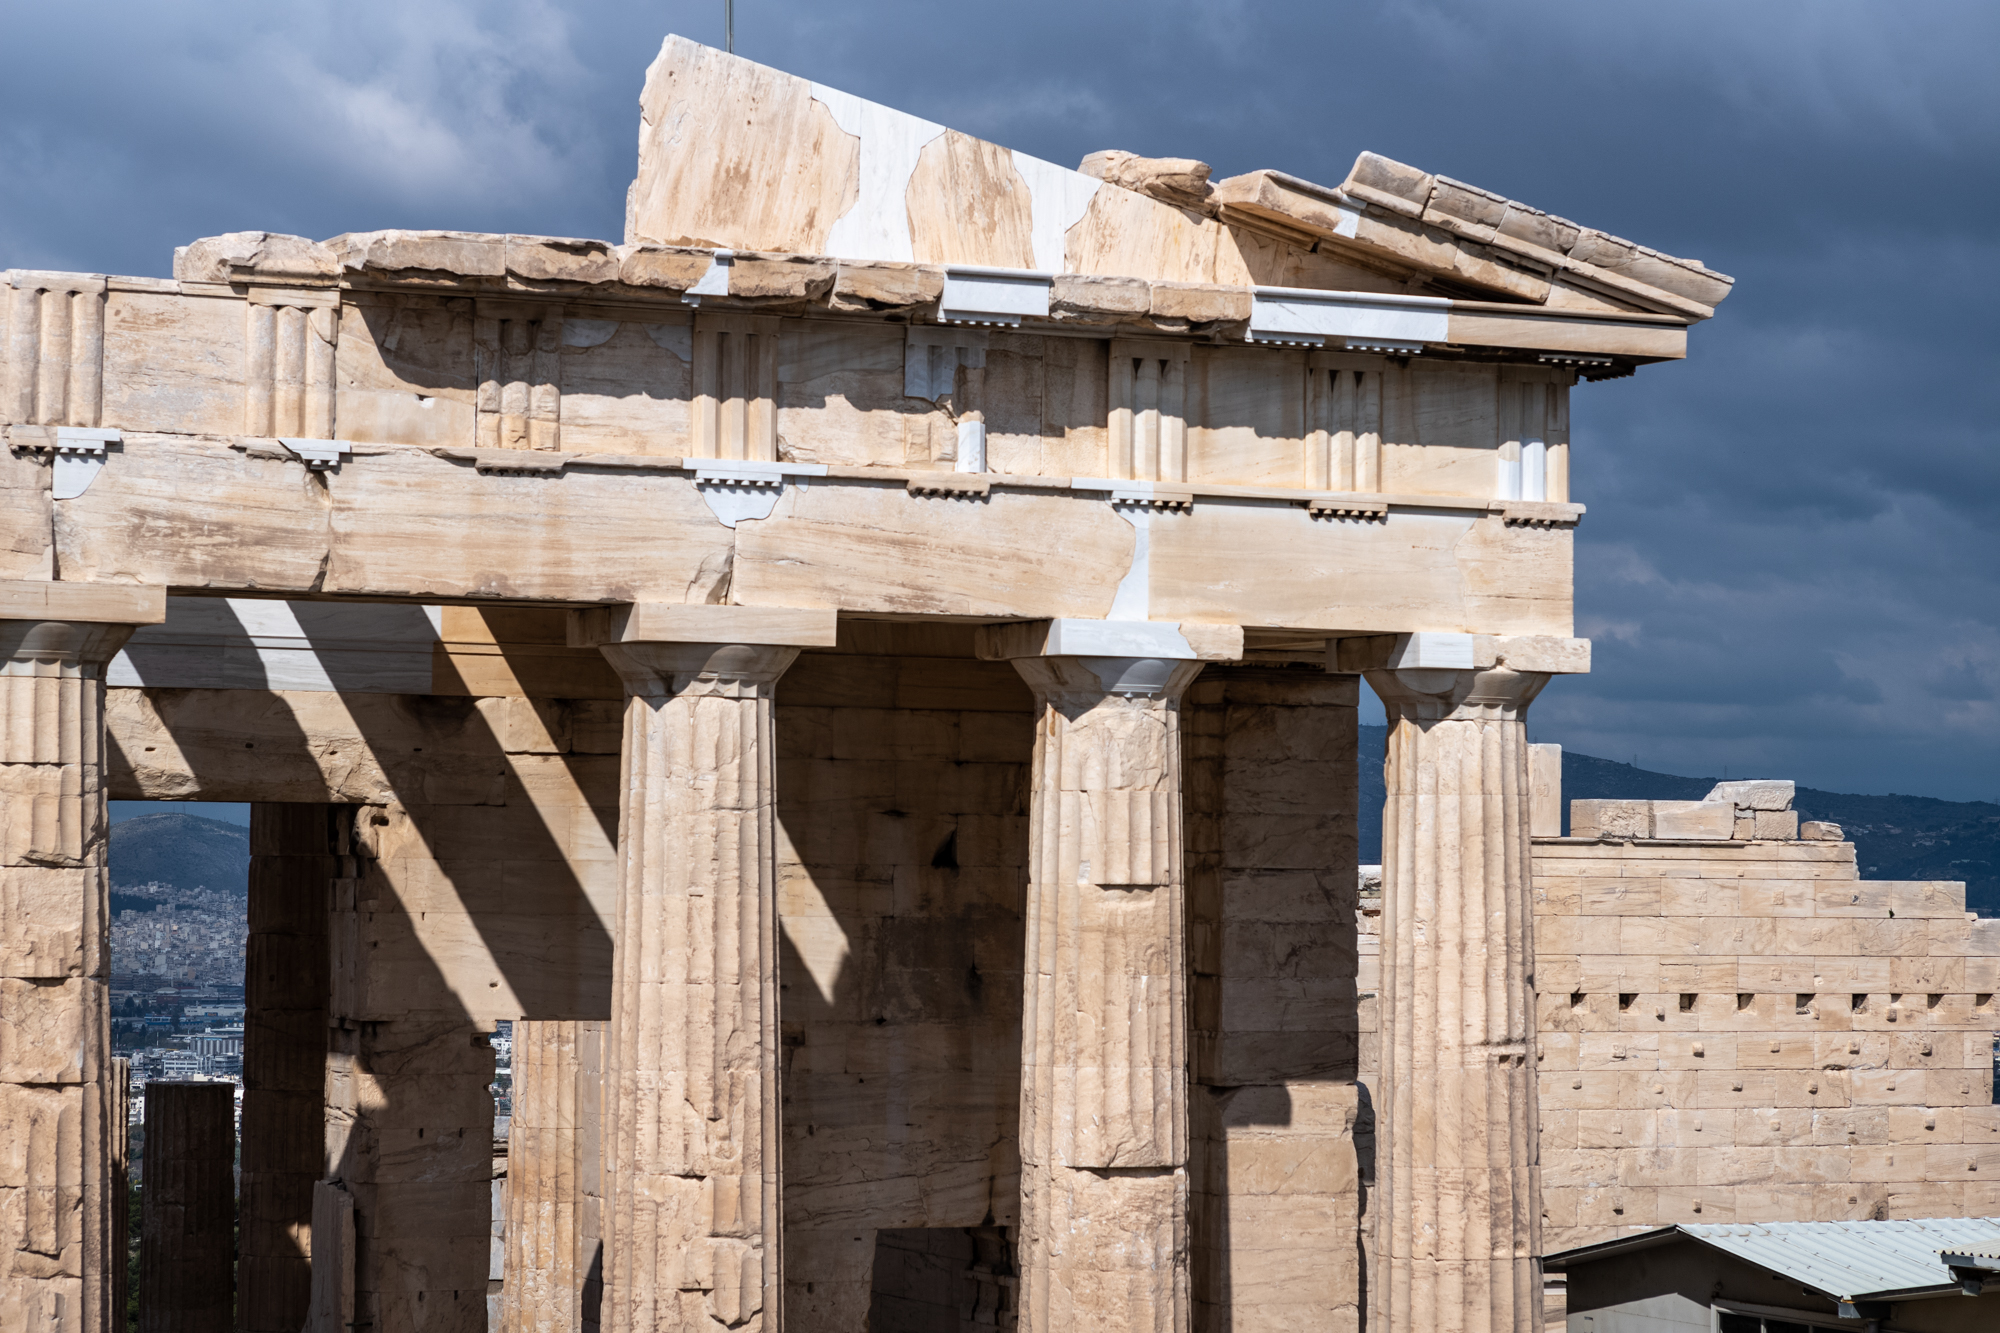 Doric Columns on a temple in the Acropolis